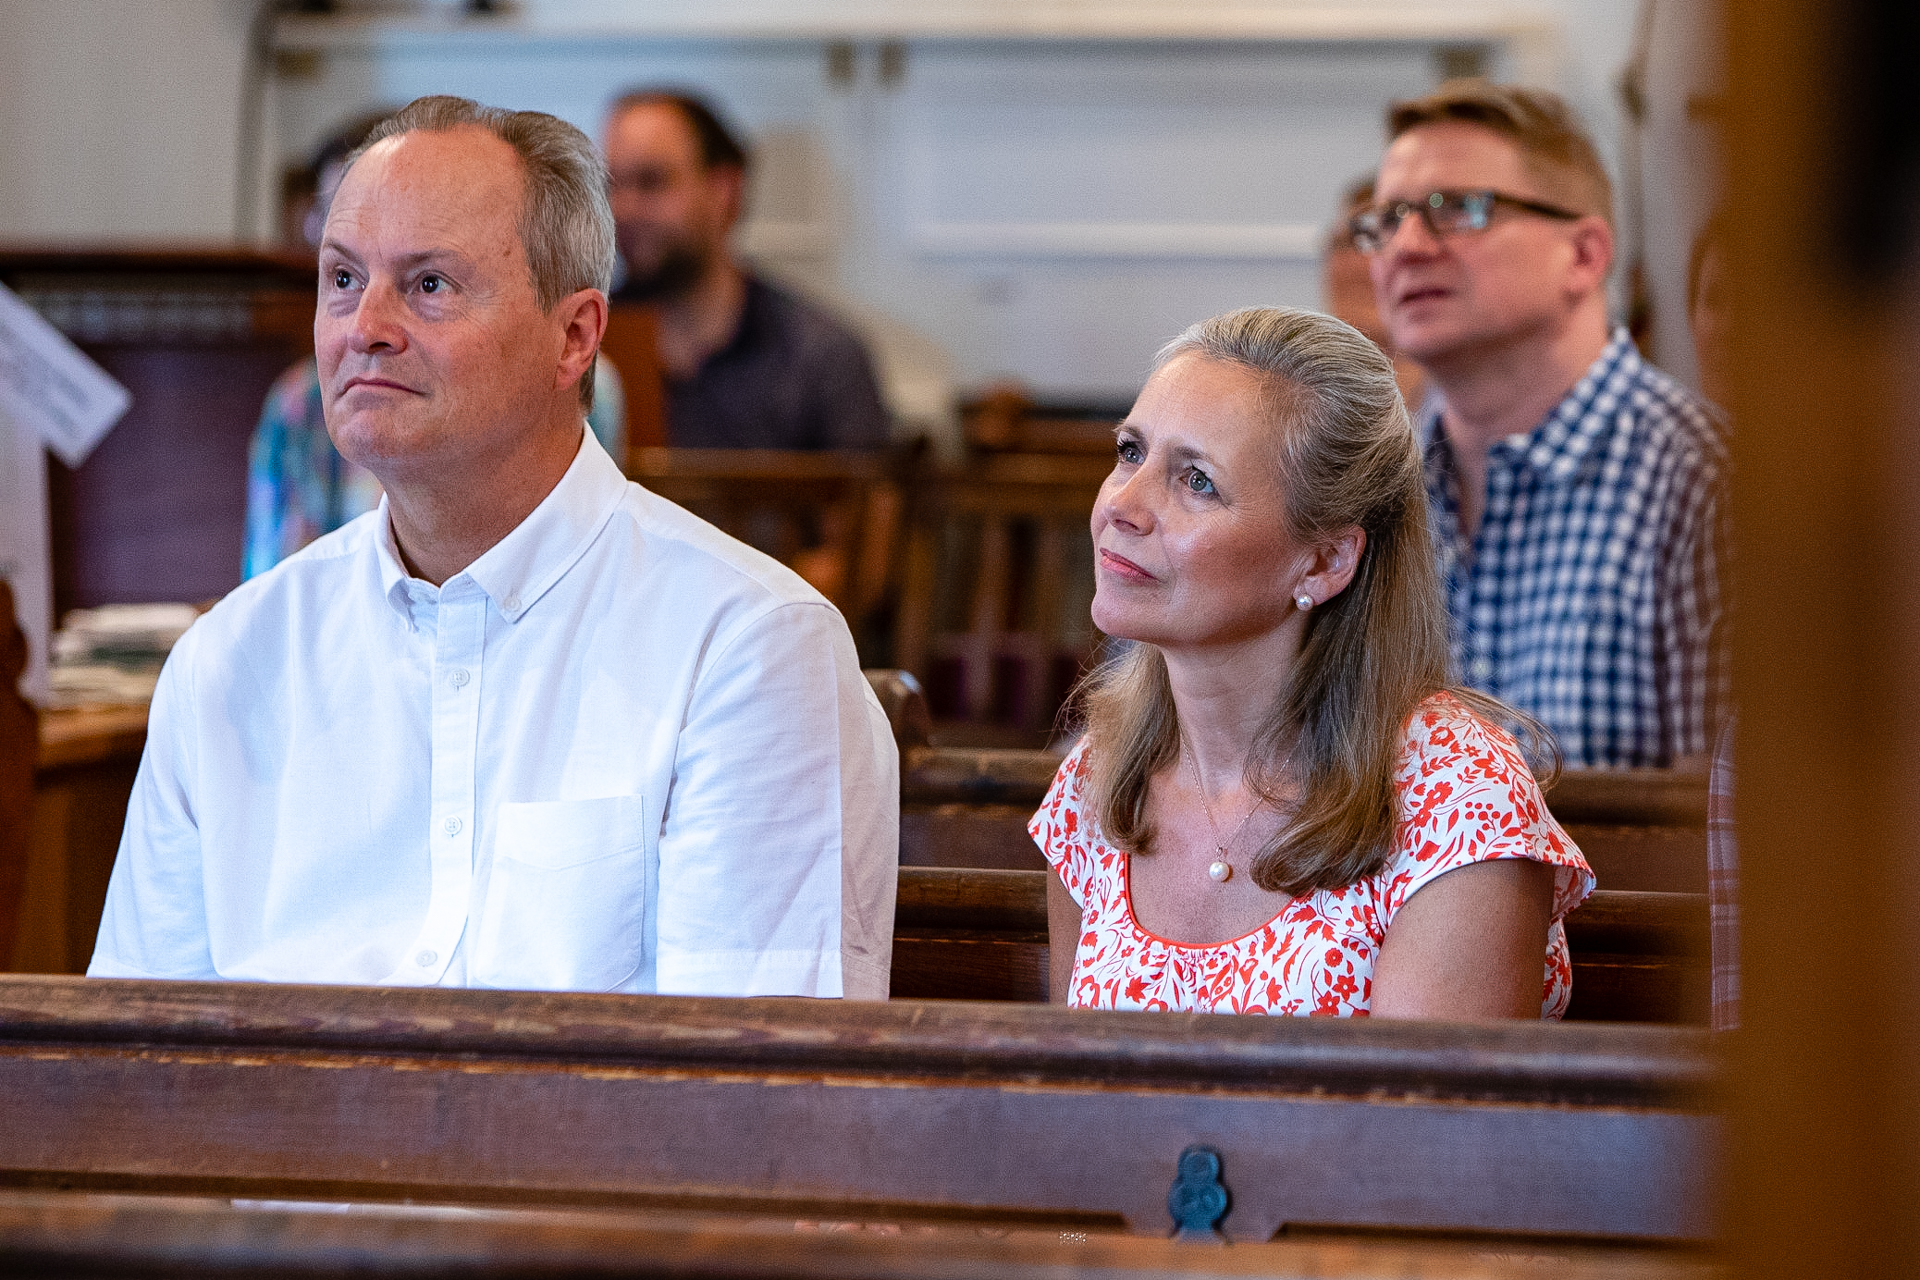 Adam Dickens 2018 - St Johns Churt - Sunday Service 1 JULY 273.jpg